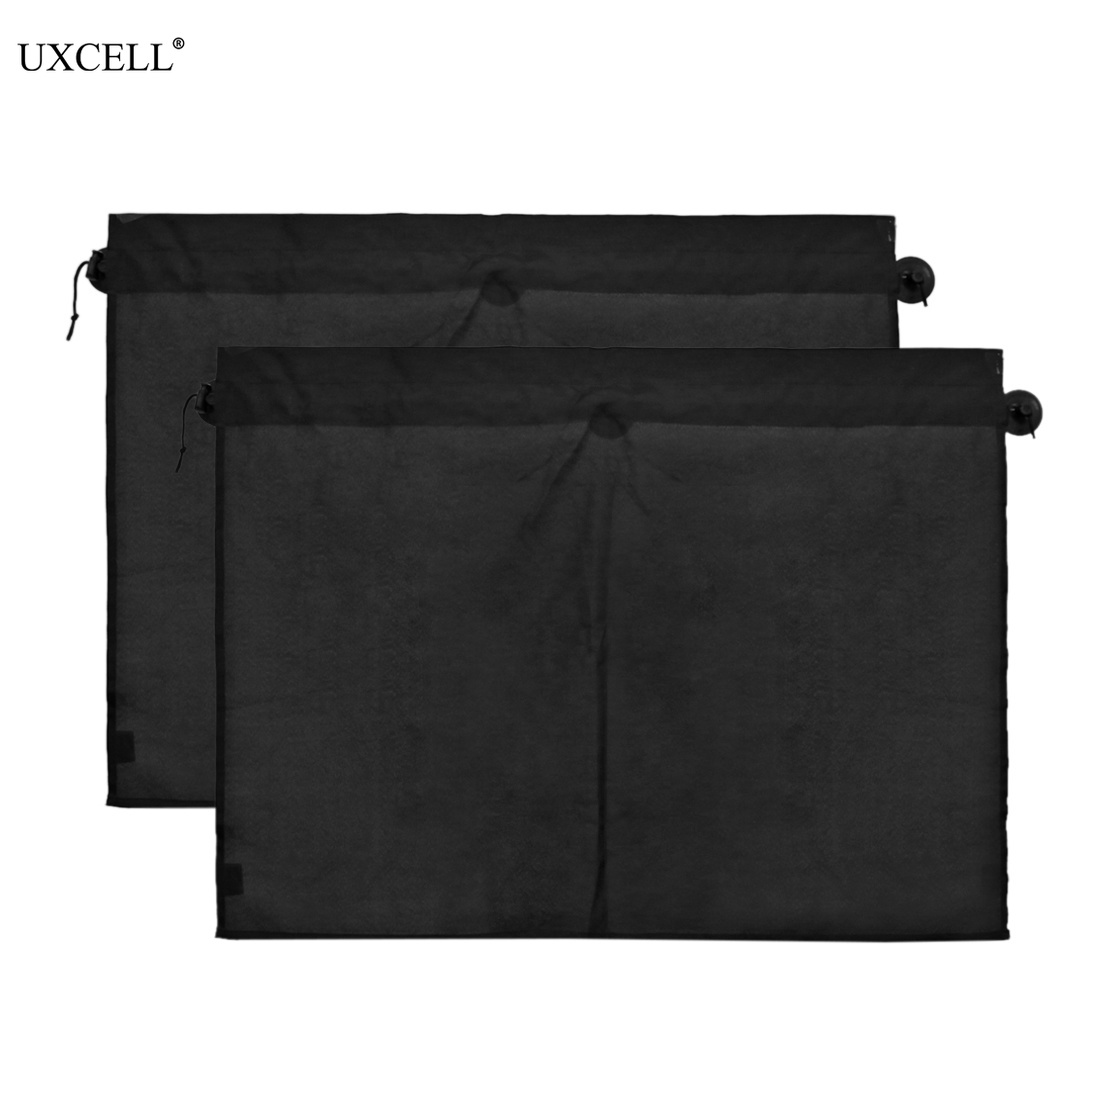 Uxcell 2 Pcs 70 x 53cm Car Side Window Curtain Sunshades Sun UV Protection Windscreen Cover with Suction